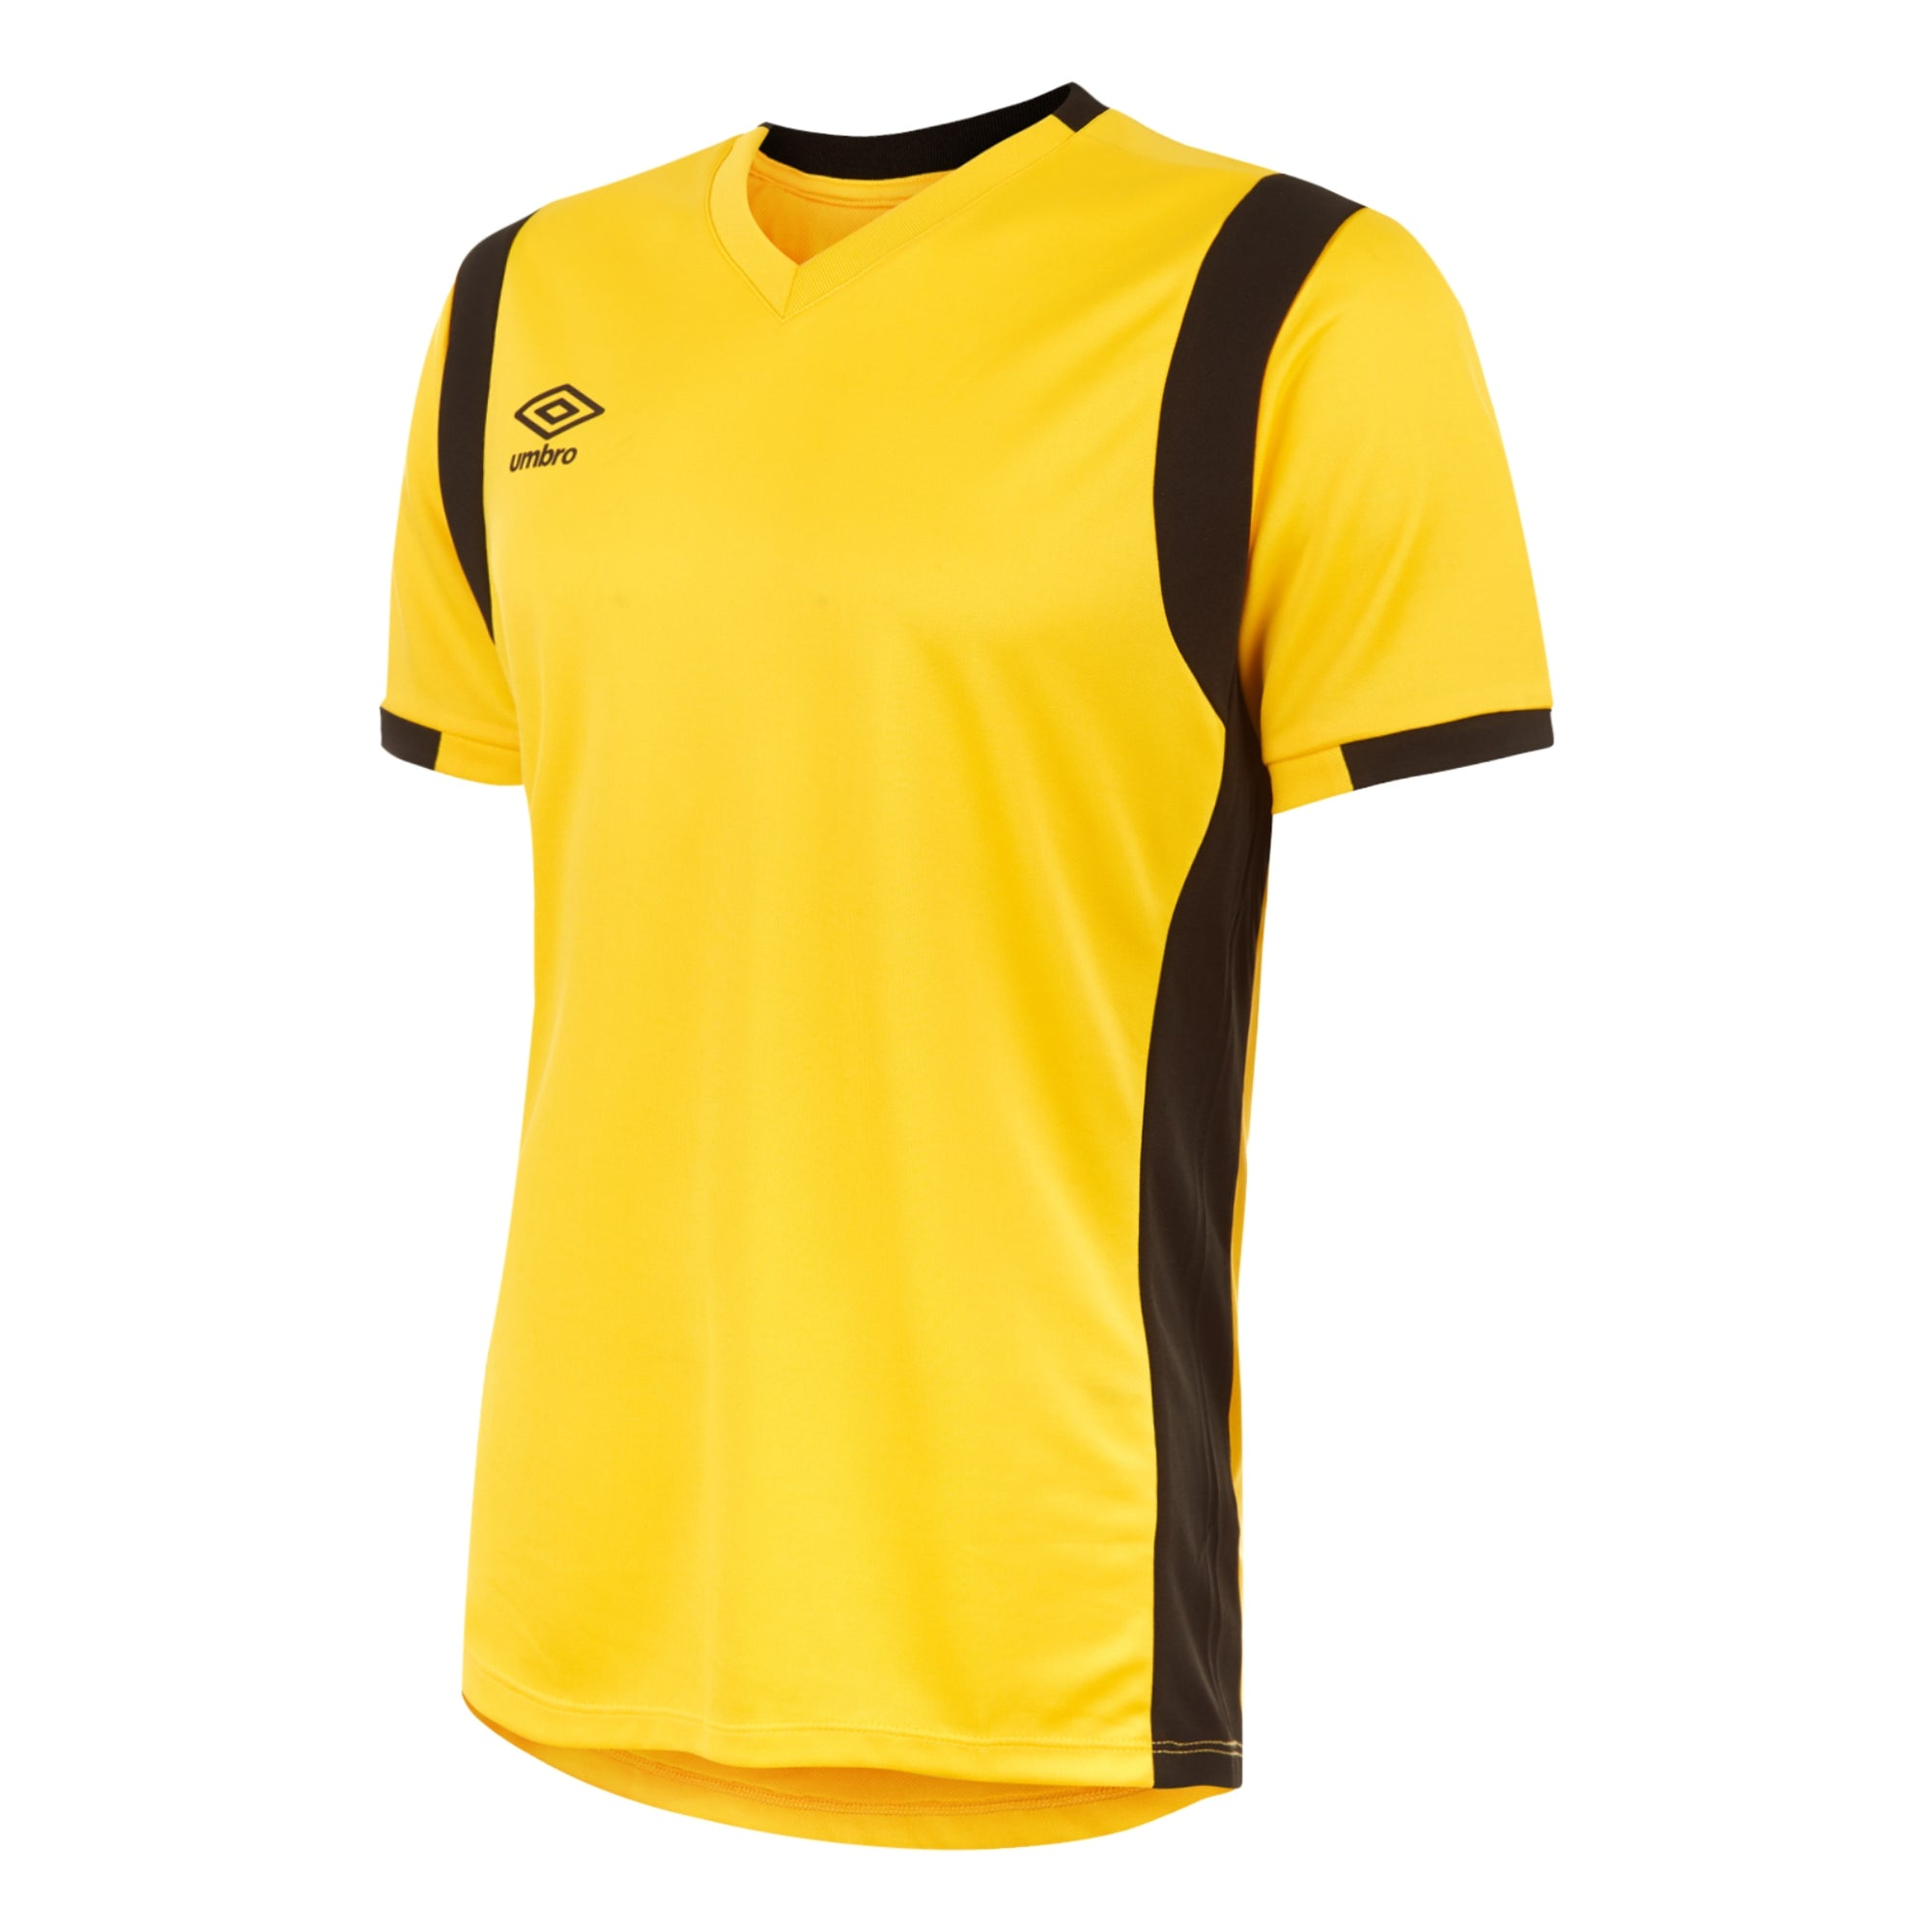 dc7e58e7d29 Umbro Spartan Jersey SS - Yellow Black - footballkitsdirect.com